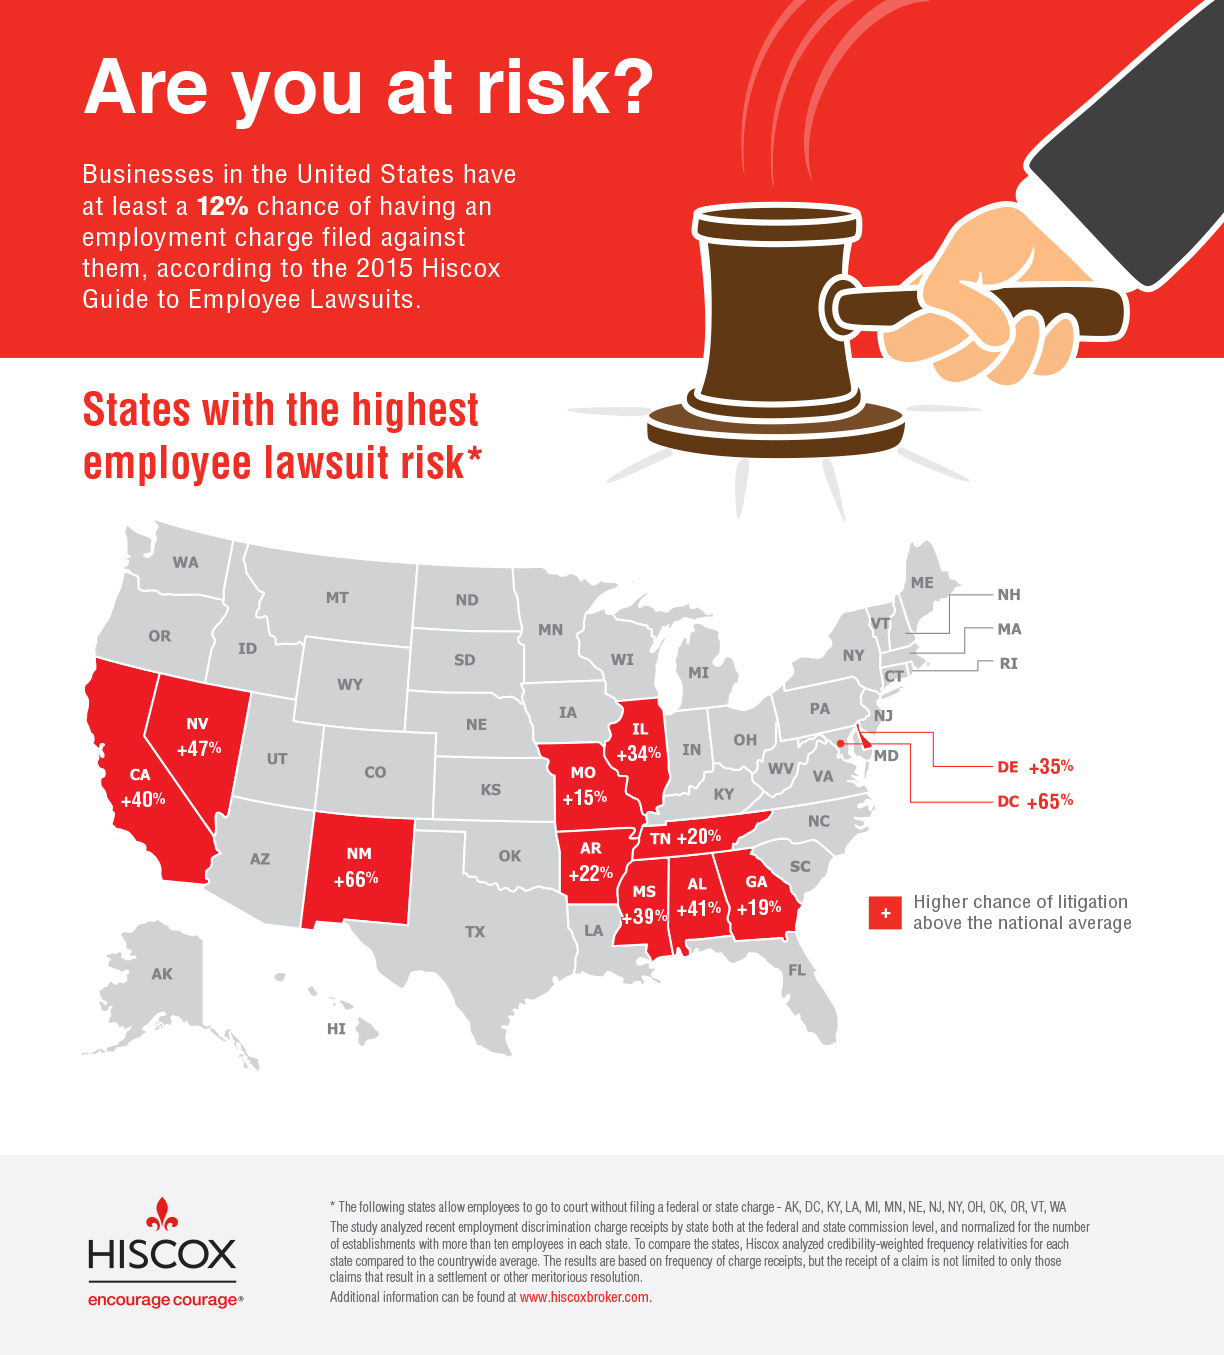 States wit hthe highest employee lawsuit risk